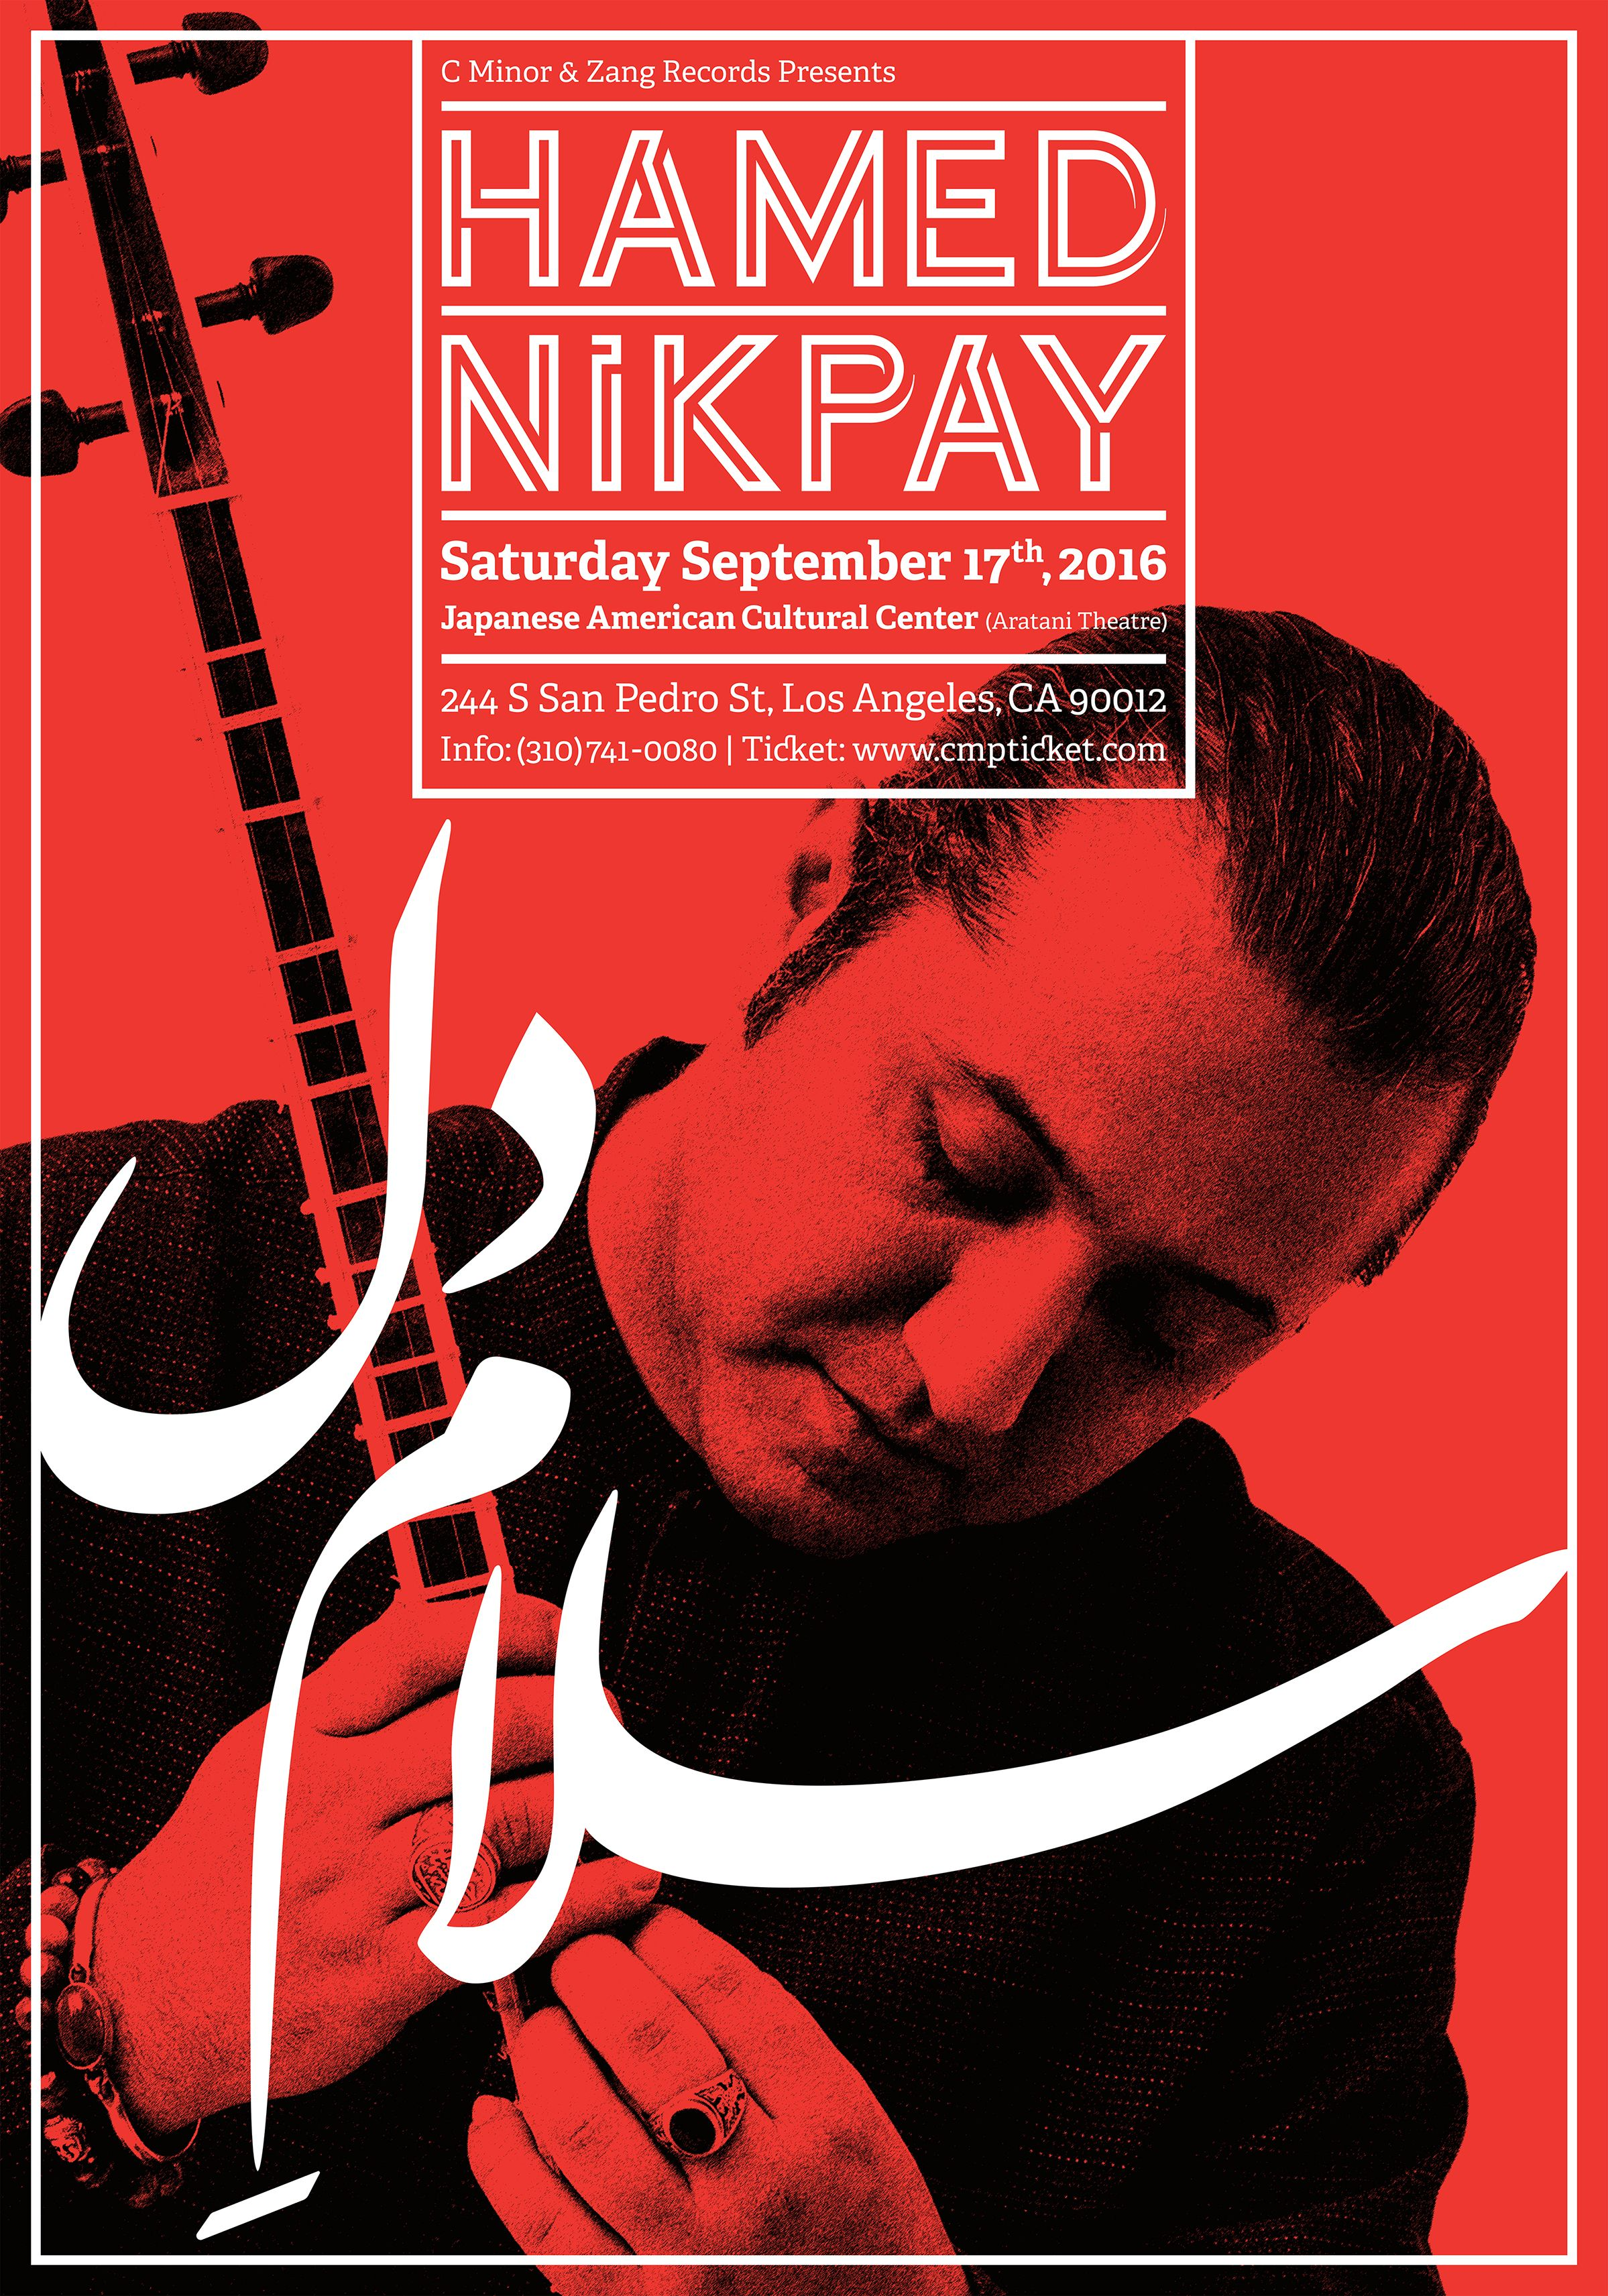 Hamed Nikpay   Saturday September 17th, 2016   Los Angeles Japanese American Cultural Center  Poster by Kourosh Beigpour